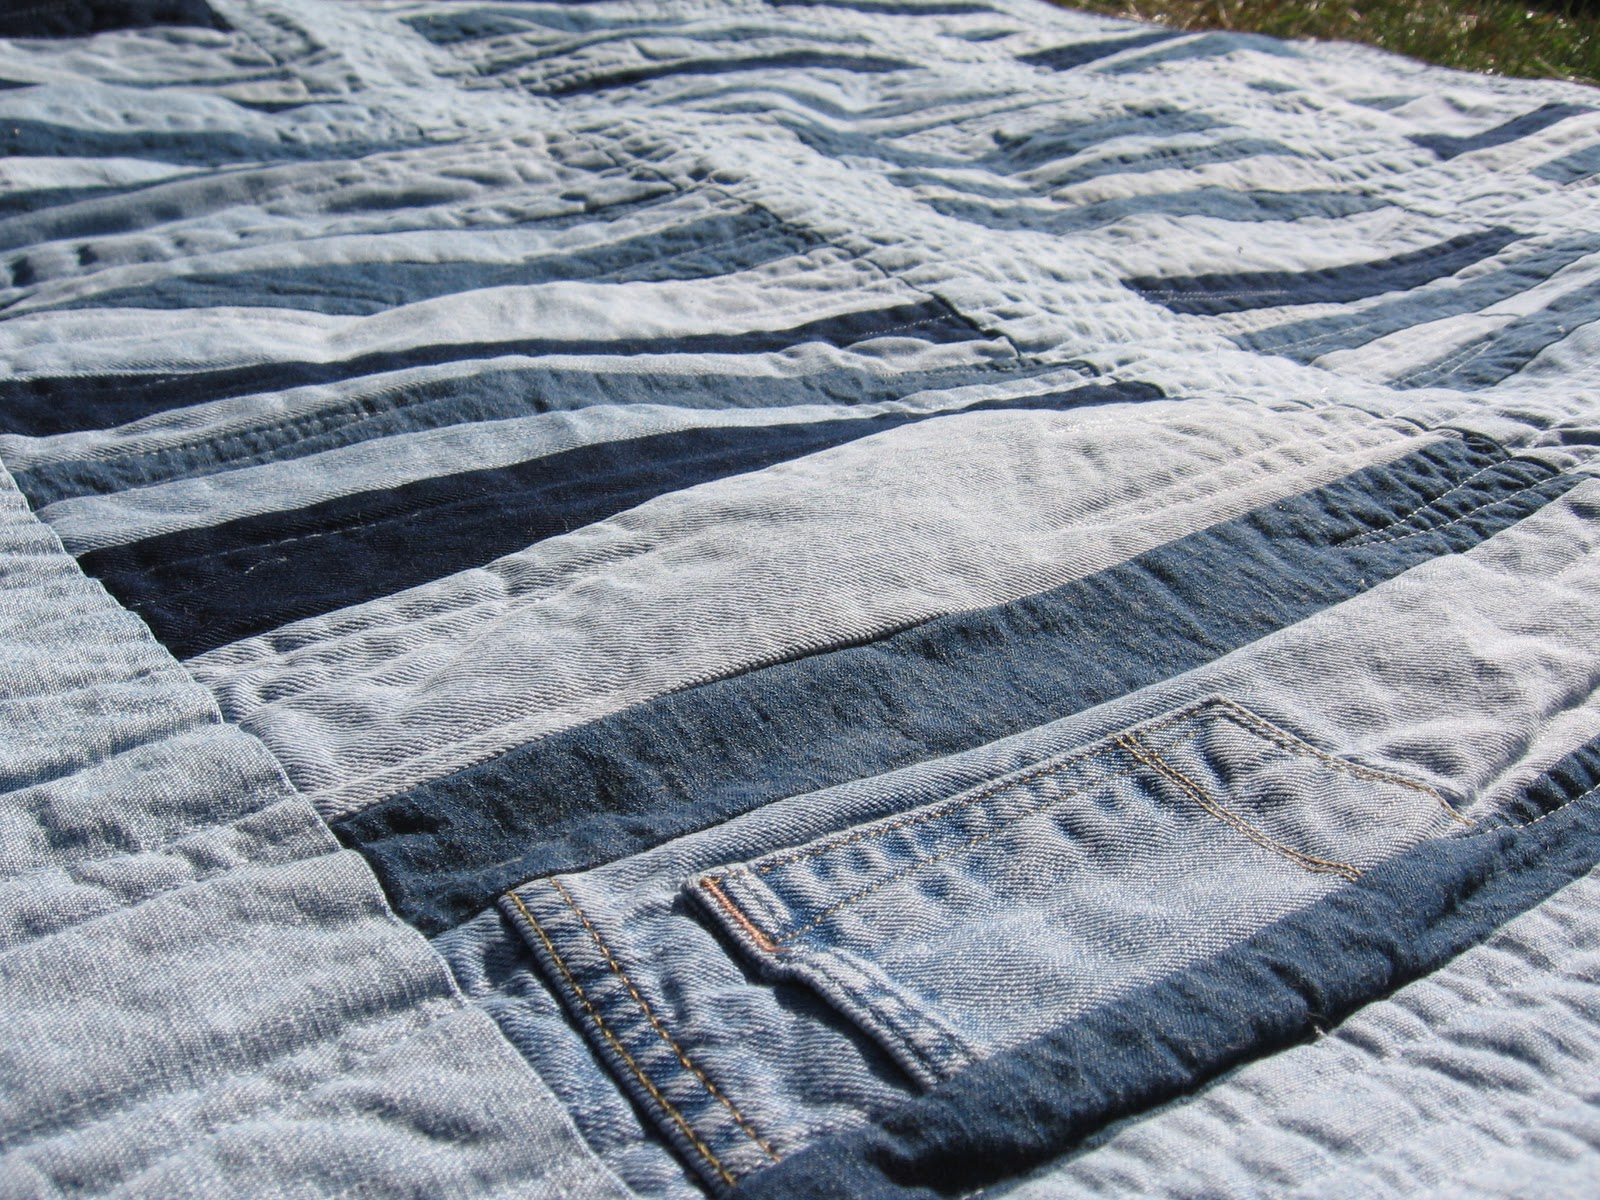 Denim Quilt Patterns | Patterns Gallery : denim quilt patterns for beginners - Adamdwight.com